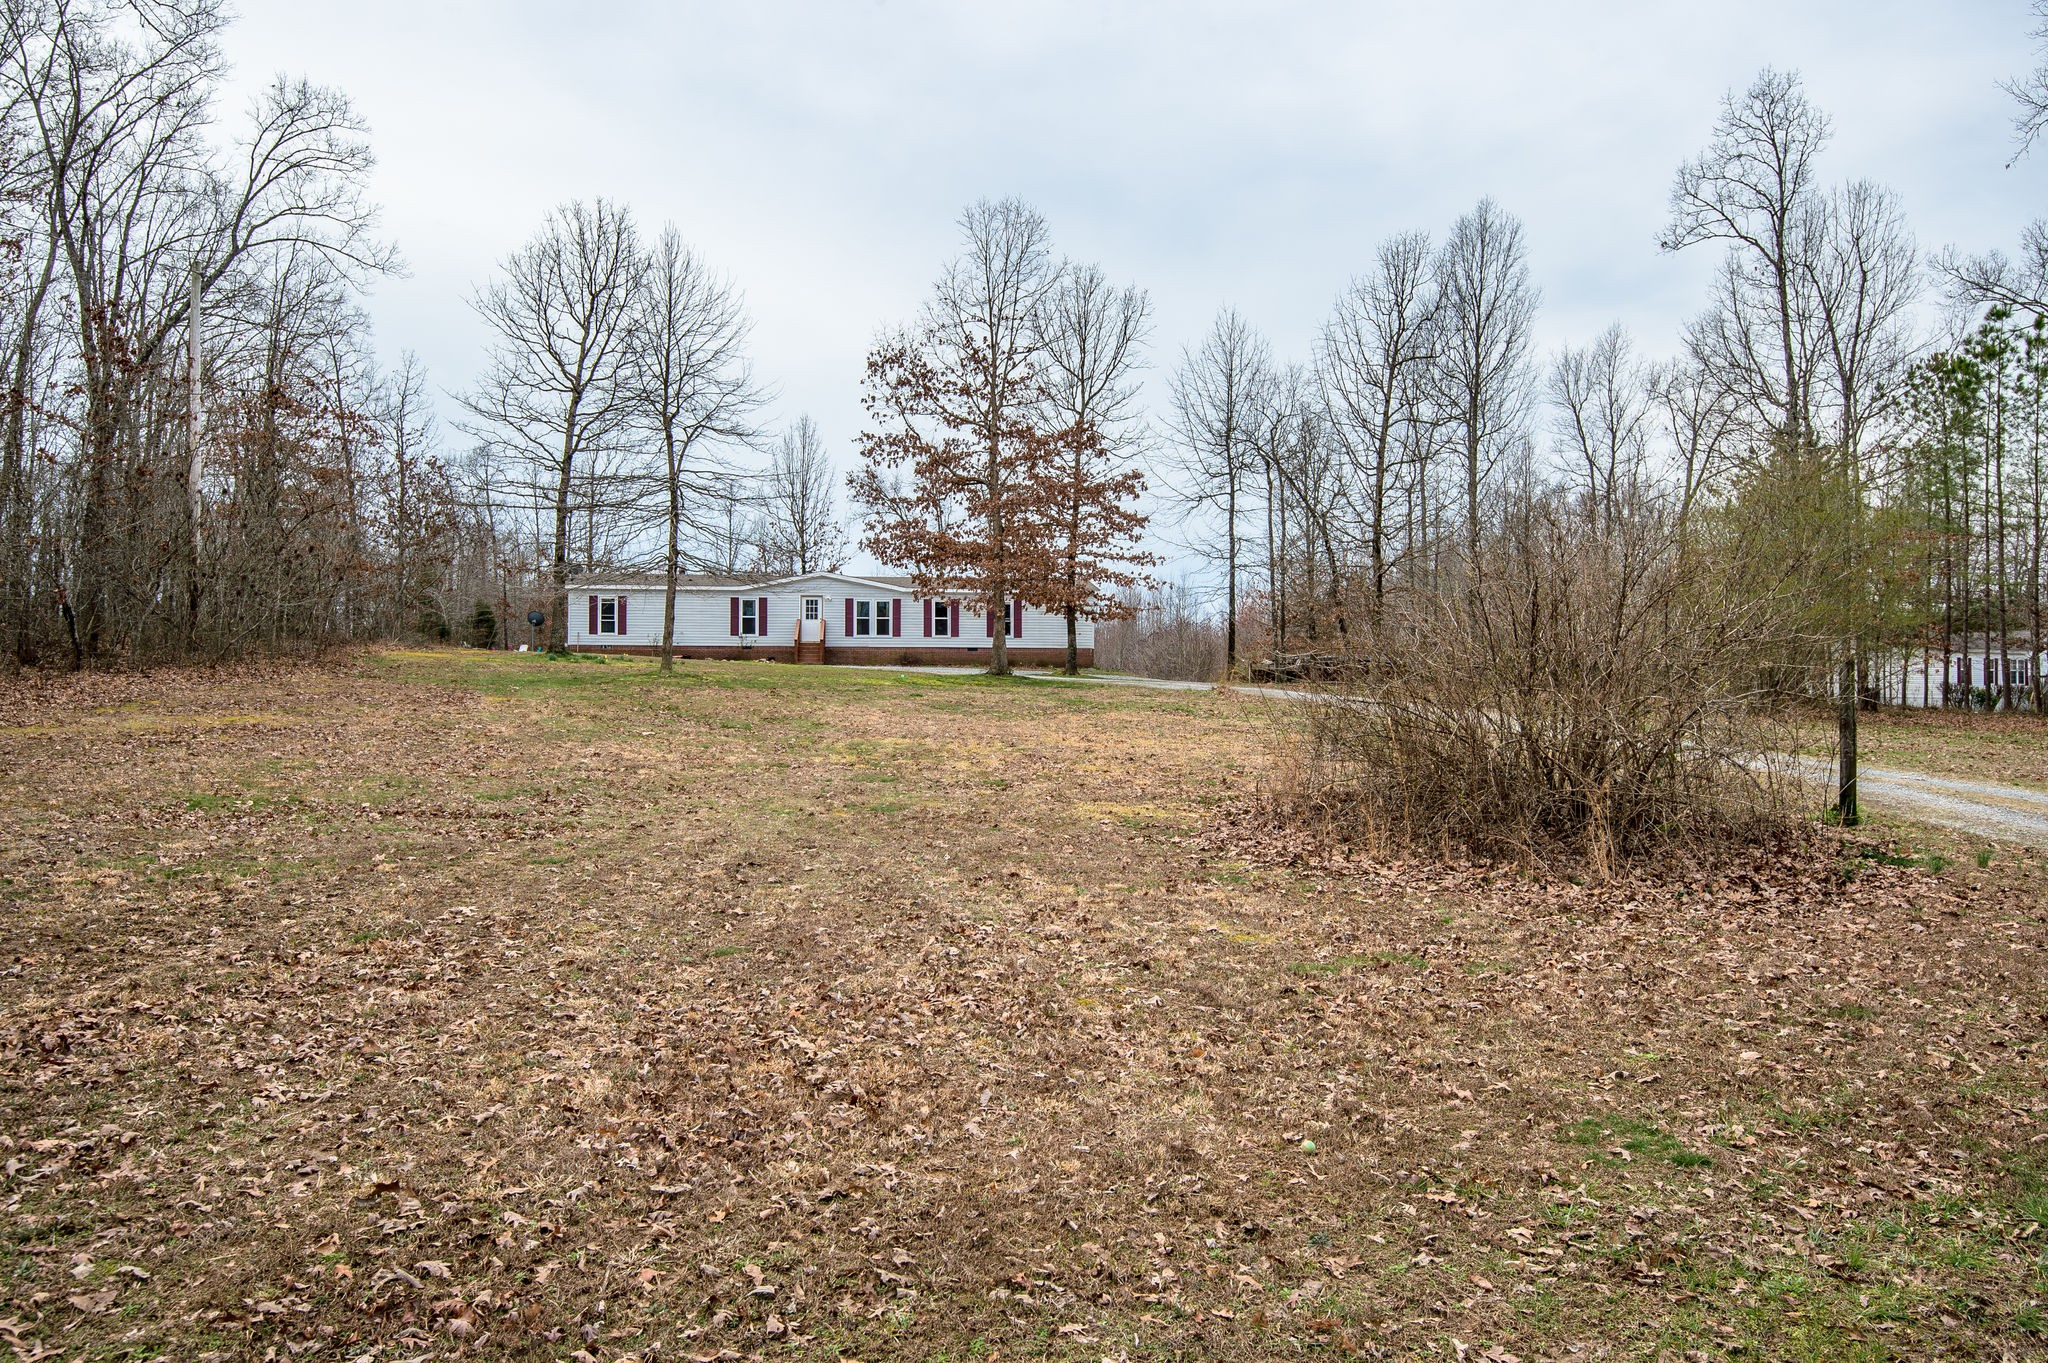 9797 Pinewood Lake Dr, Nunnelly, TN 37137 - Nunnelly, TN real estate listing